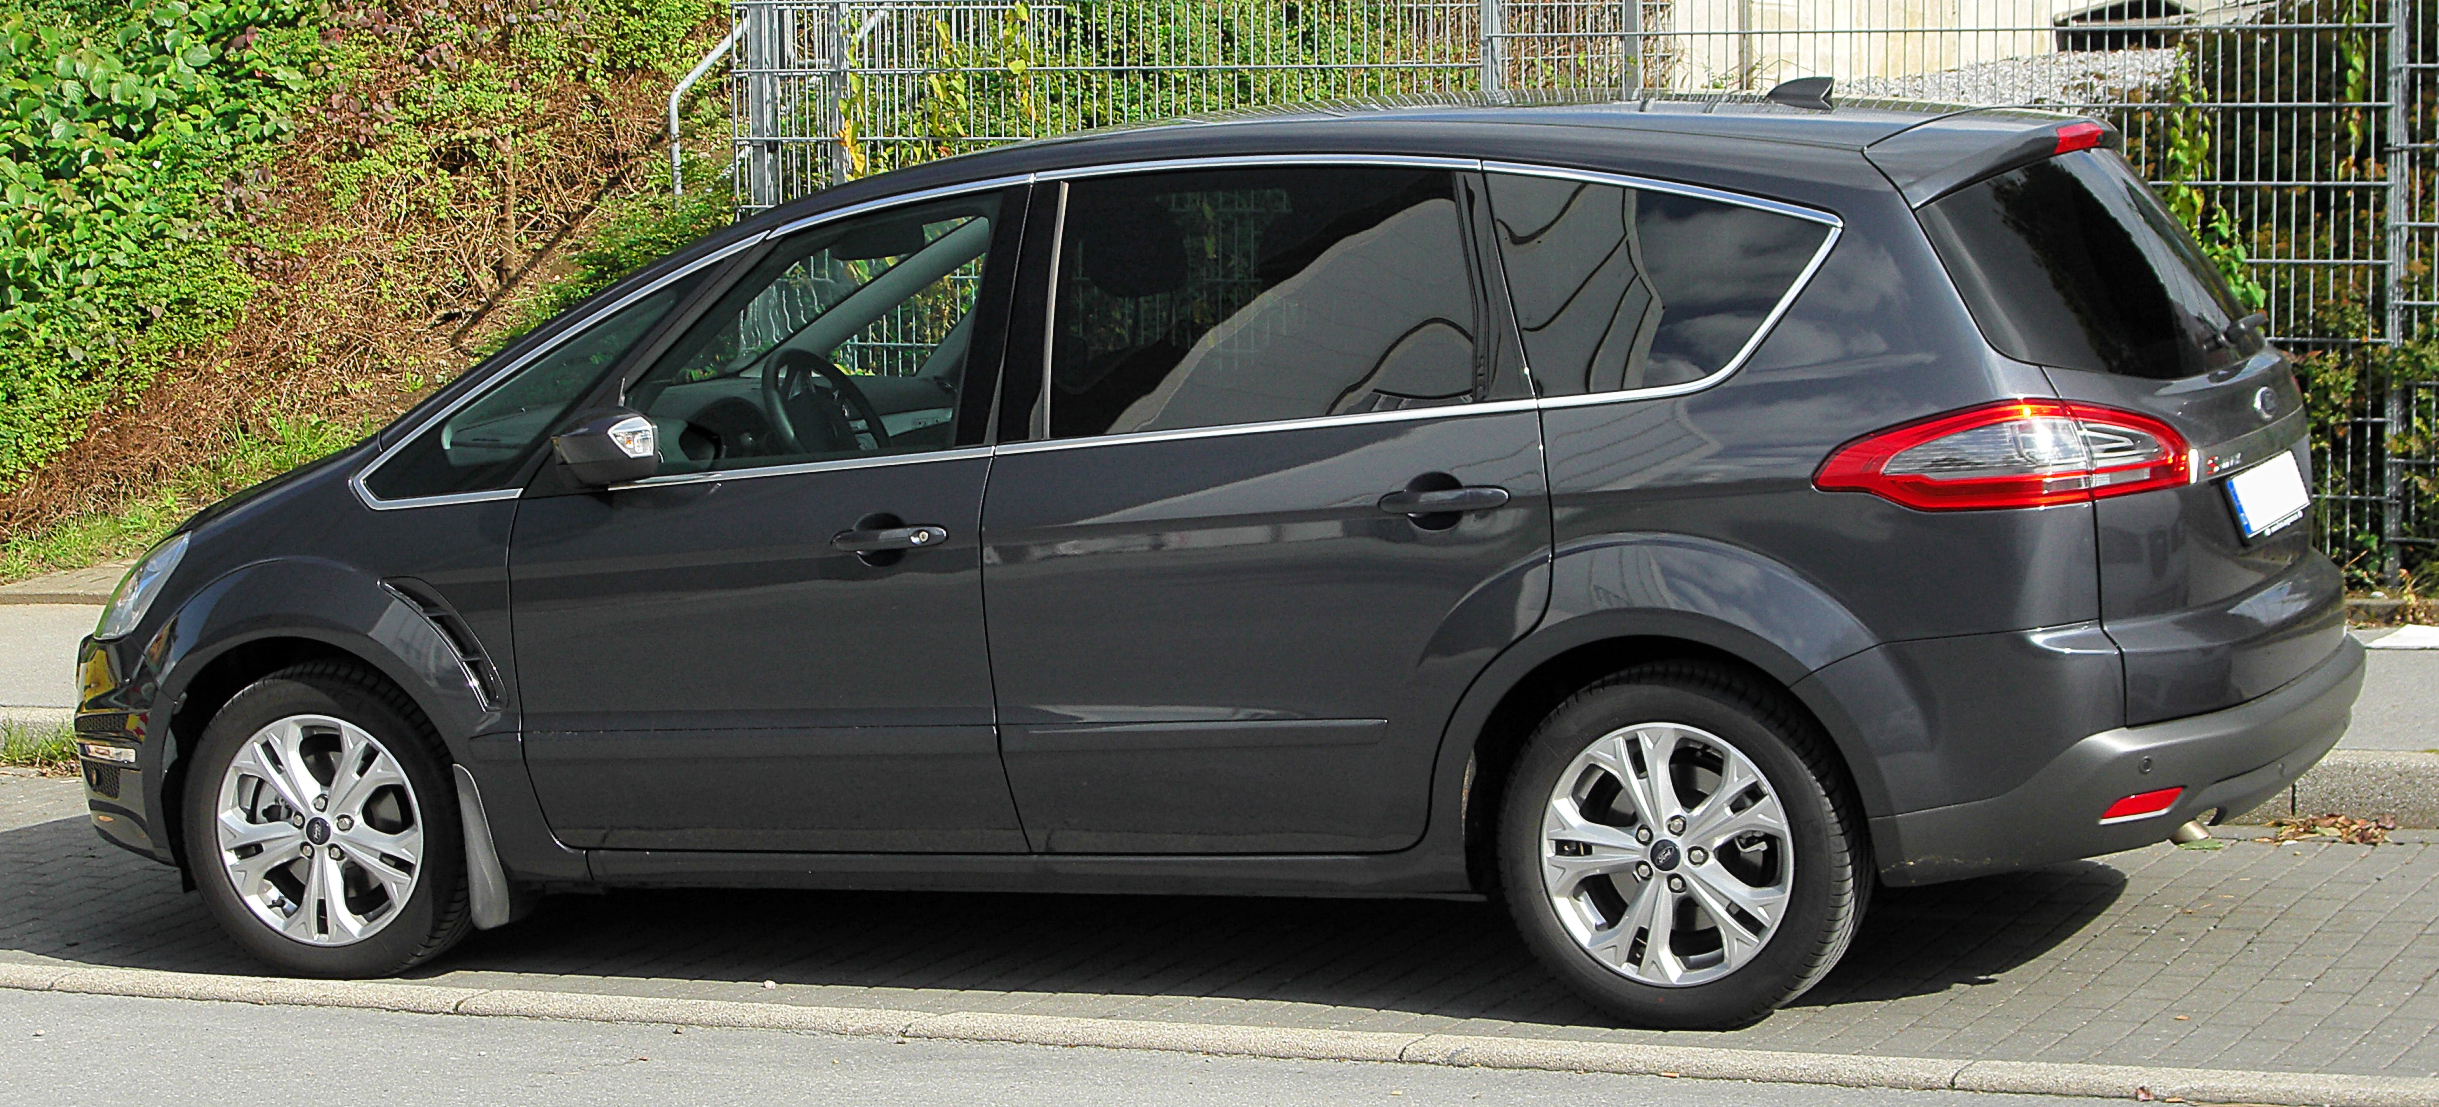 2010 Ford S-Max #18